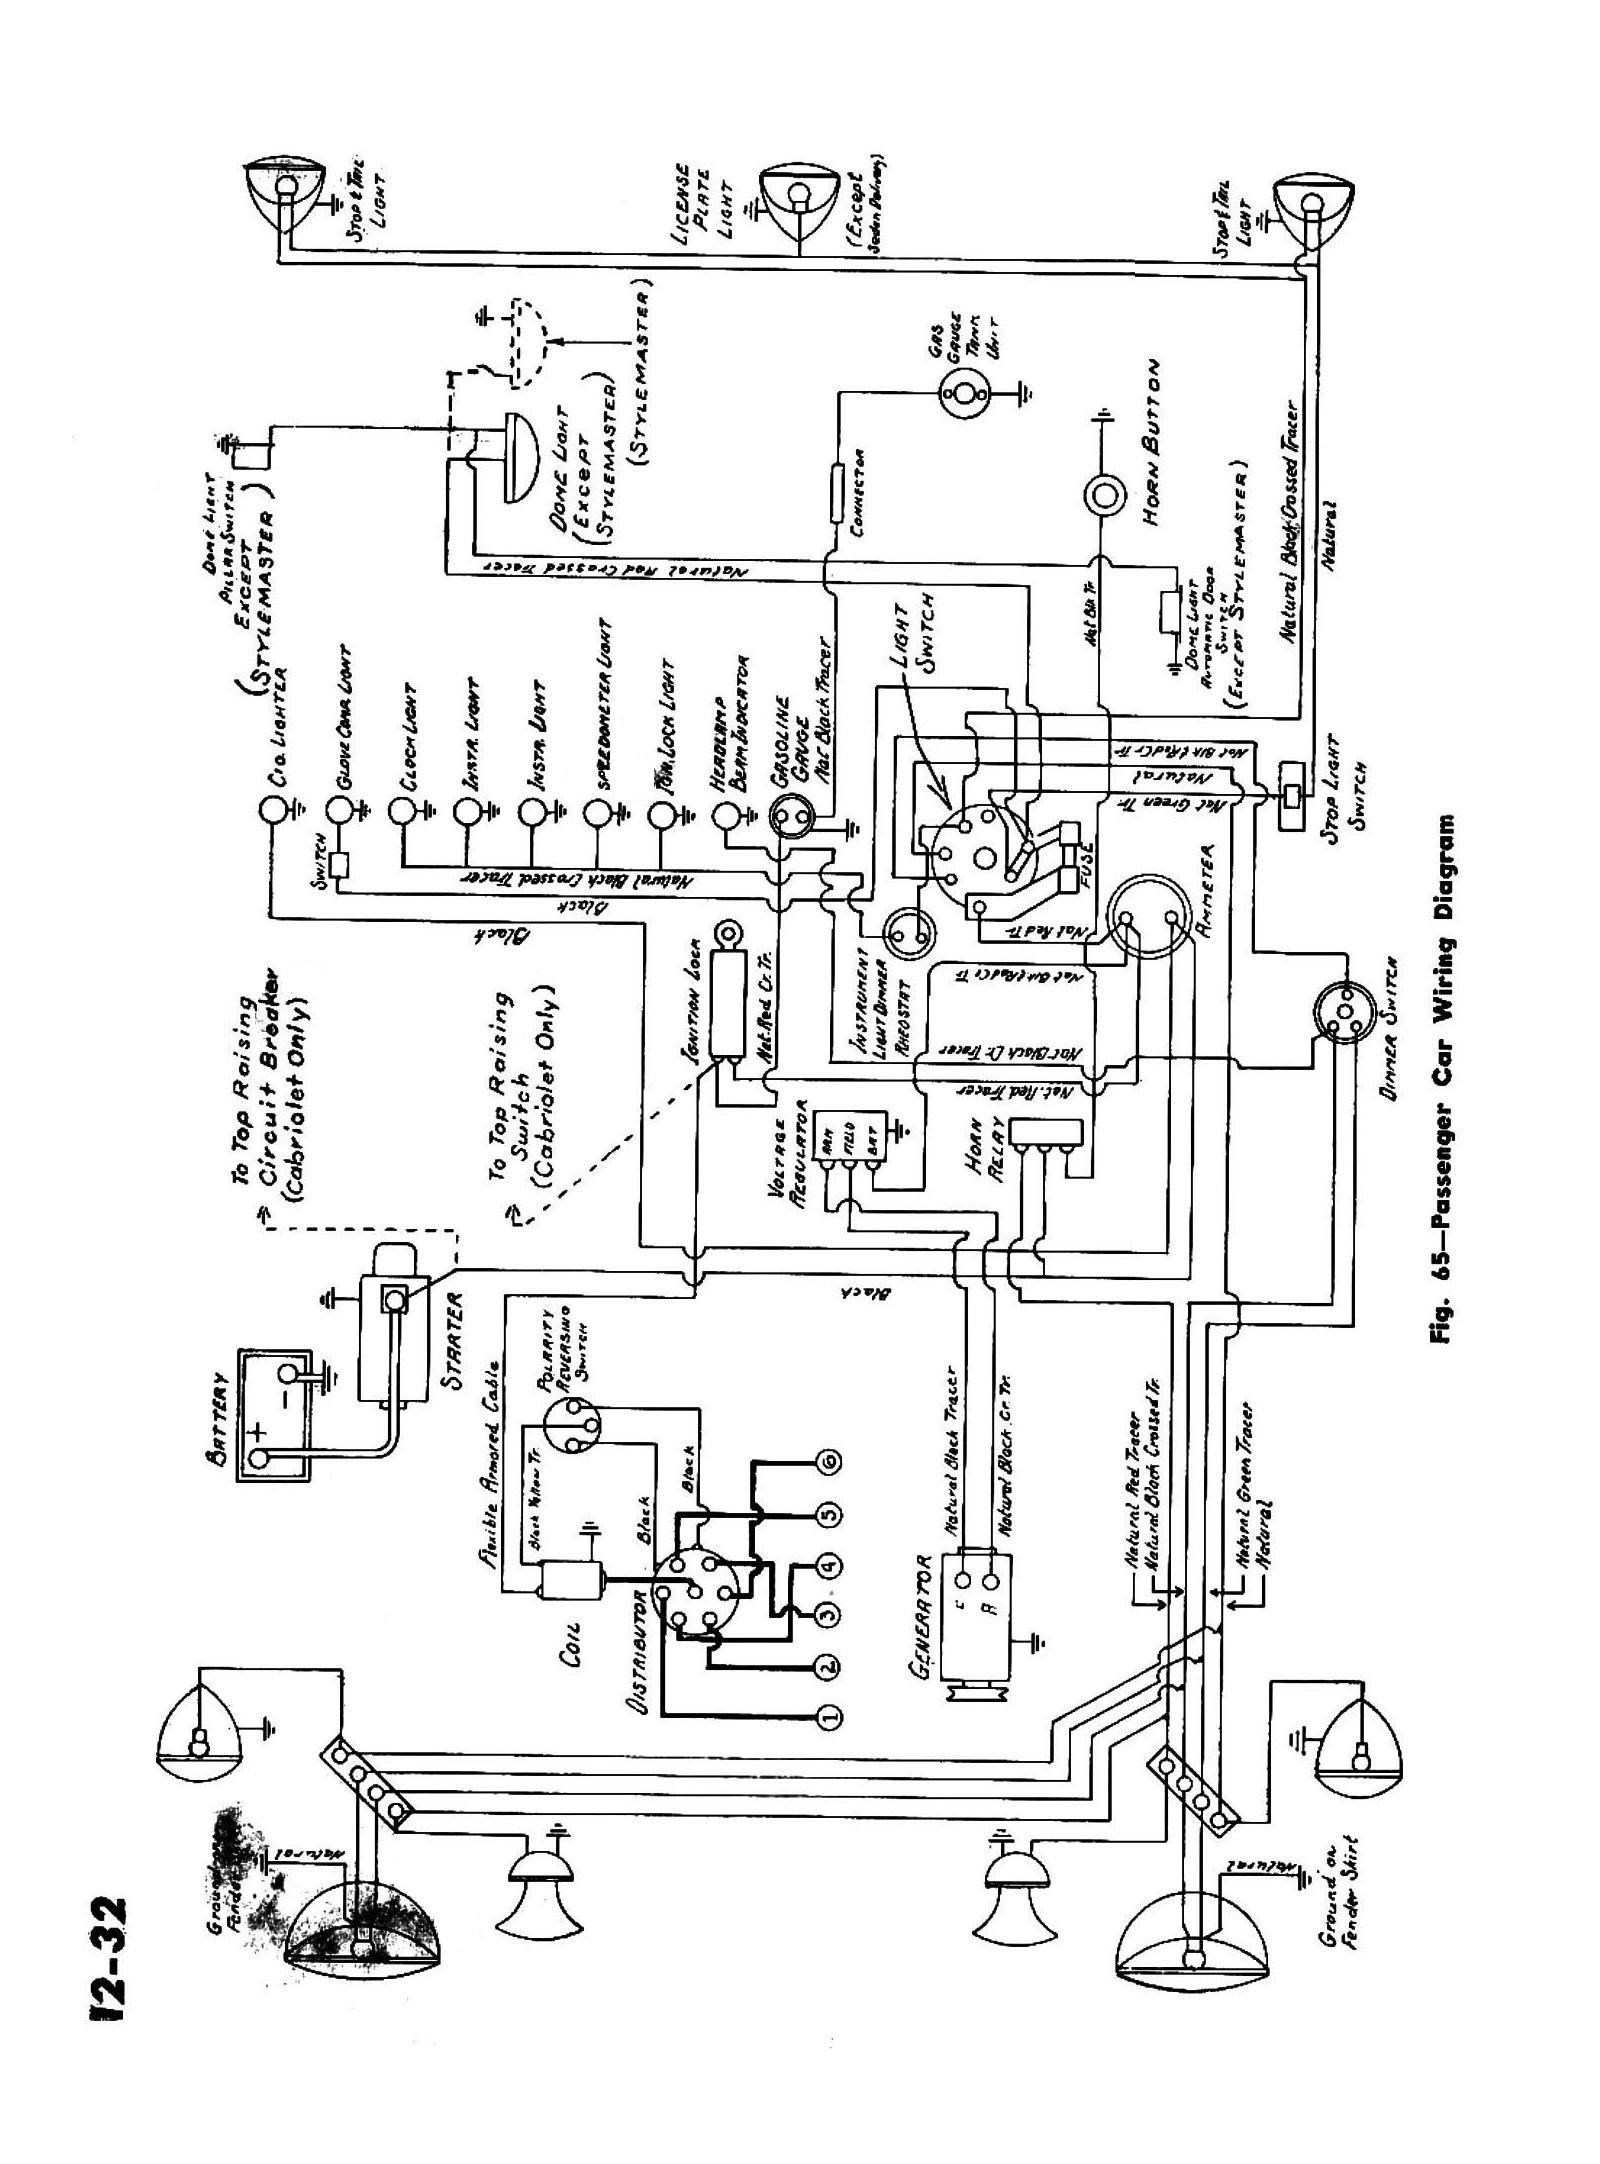 How To Read Electrical Circuit Diagram Pdf Industrial Electrical - Auto gate wiring diagram pdf